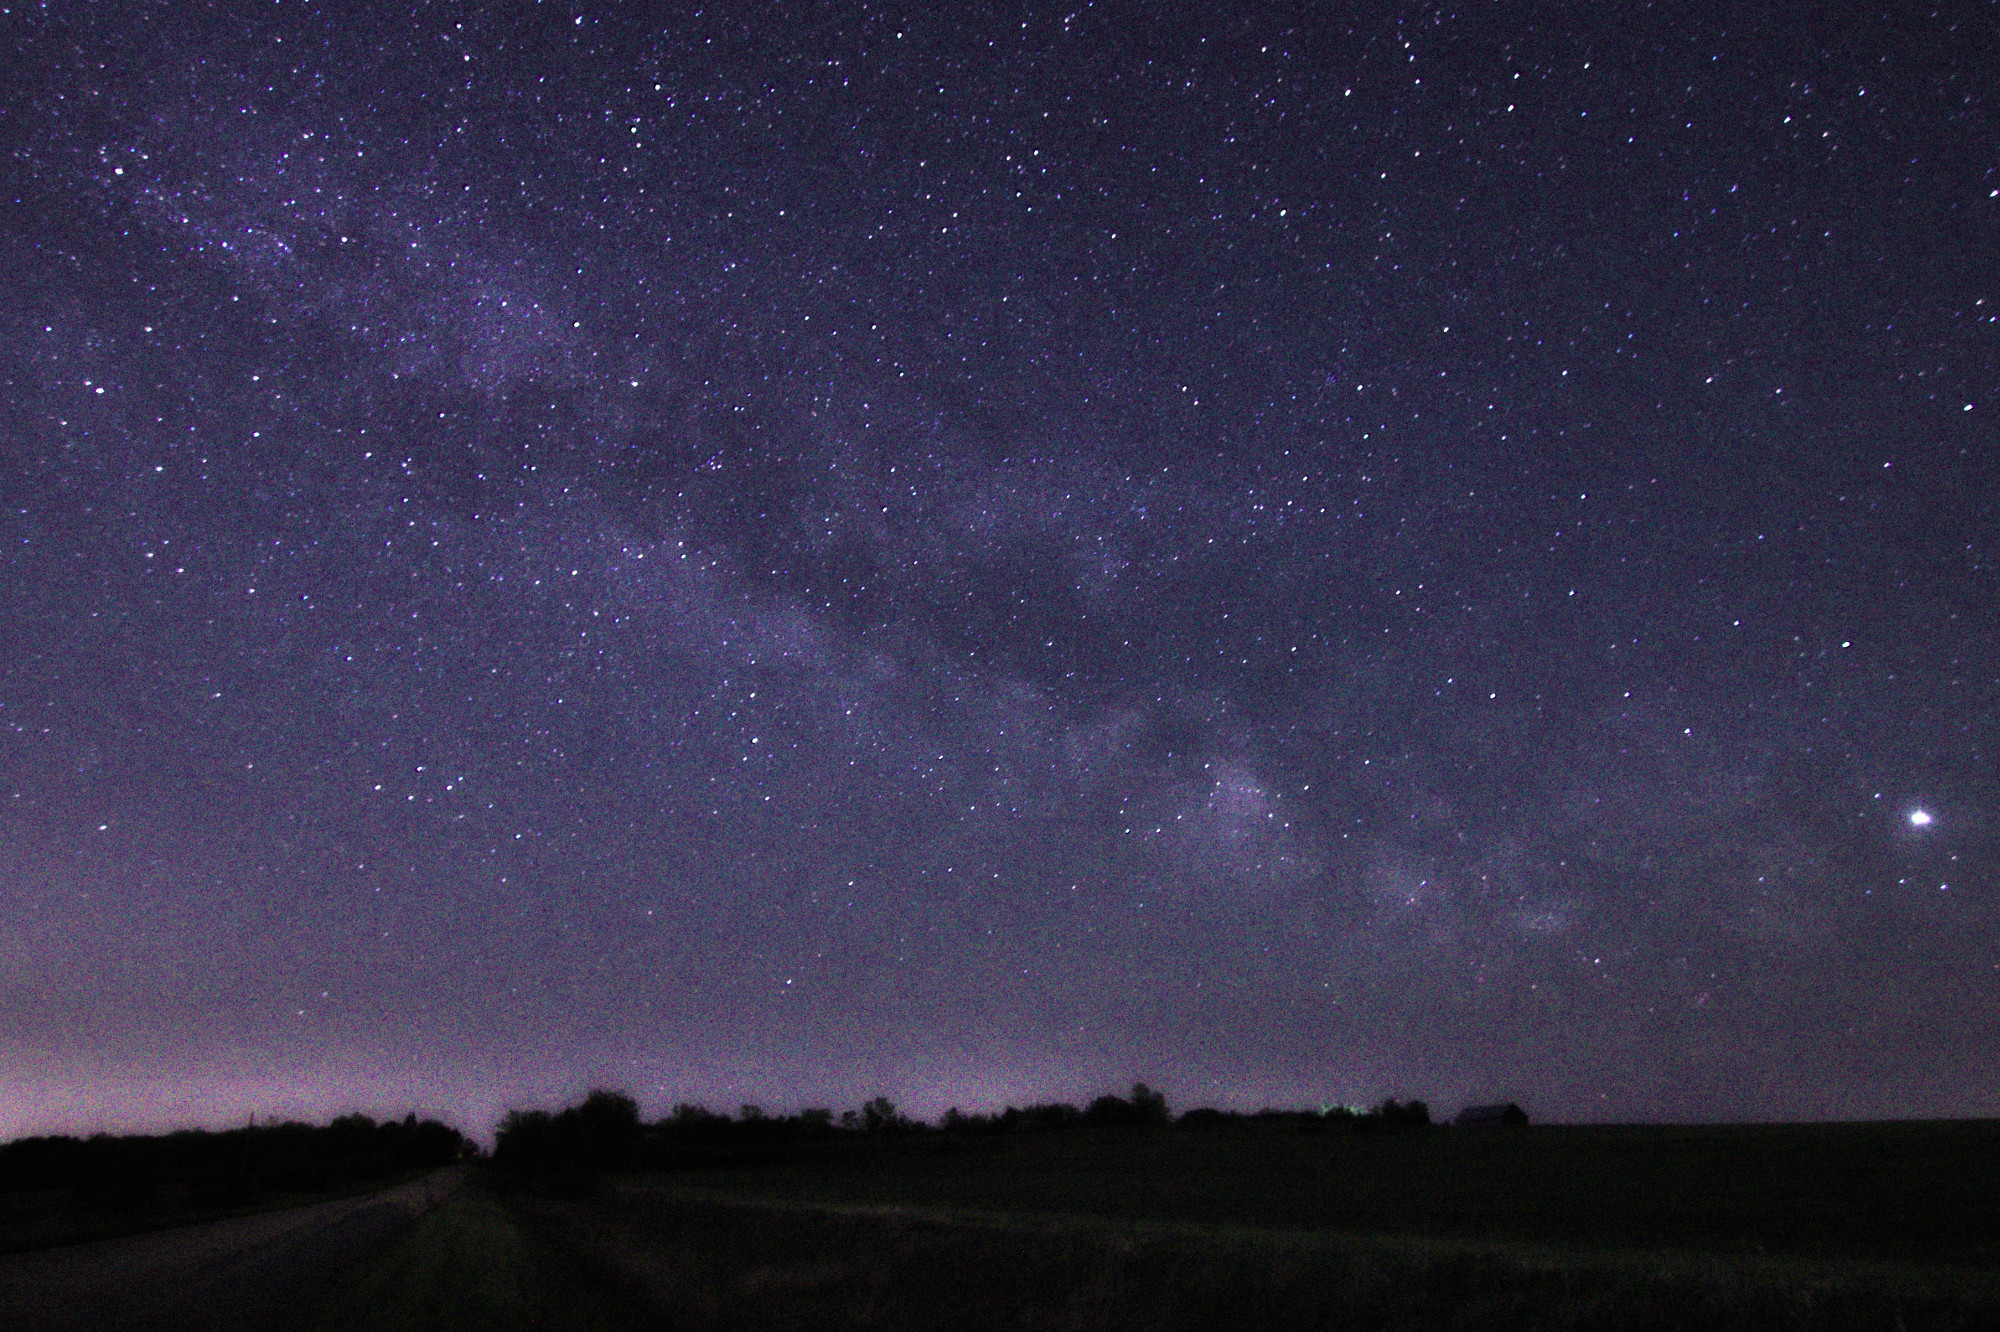 Night shot of the Milky Way